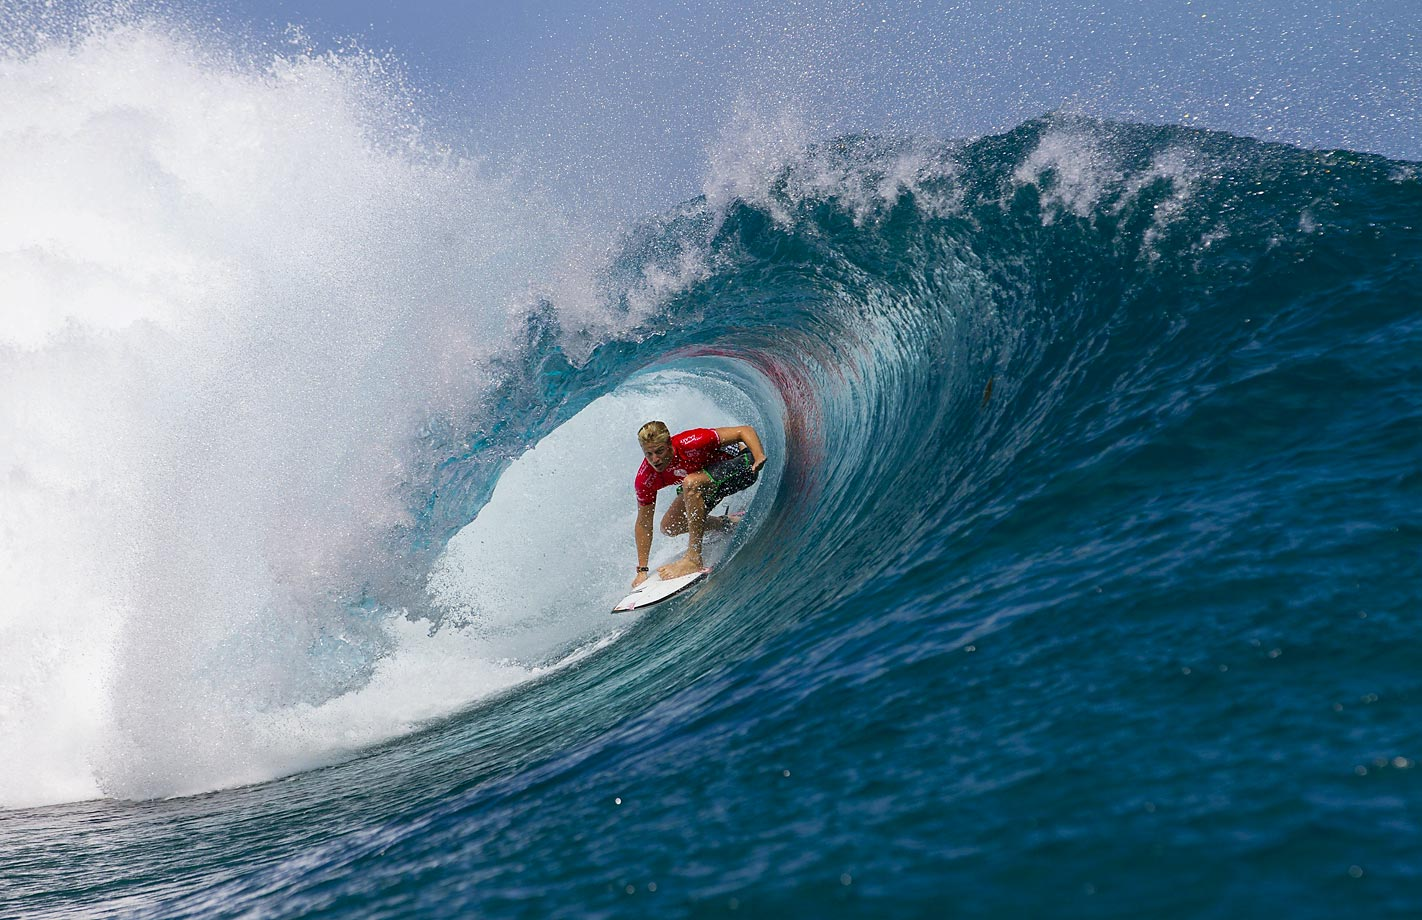 Kolohe Andino surfs to victory in Teahupo'o, French Polynesia on August 24.